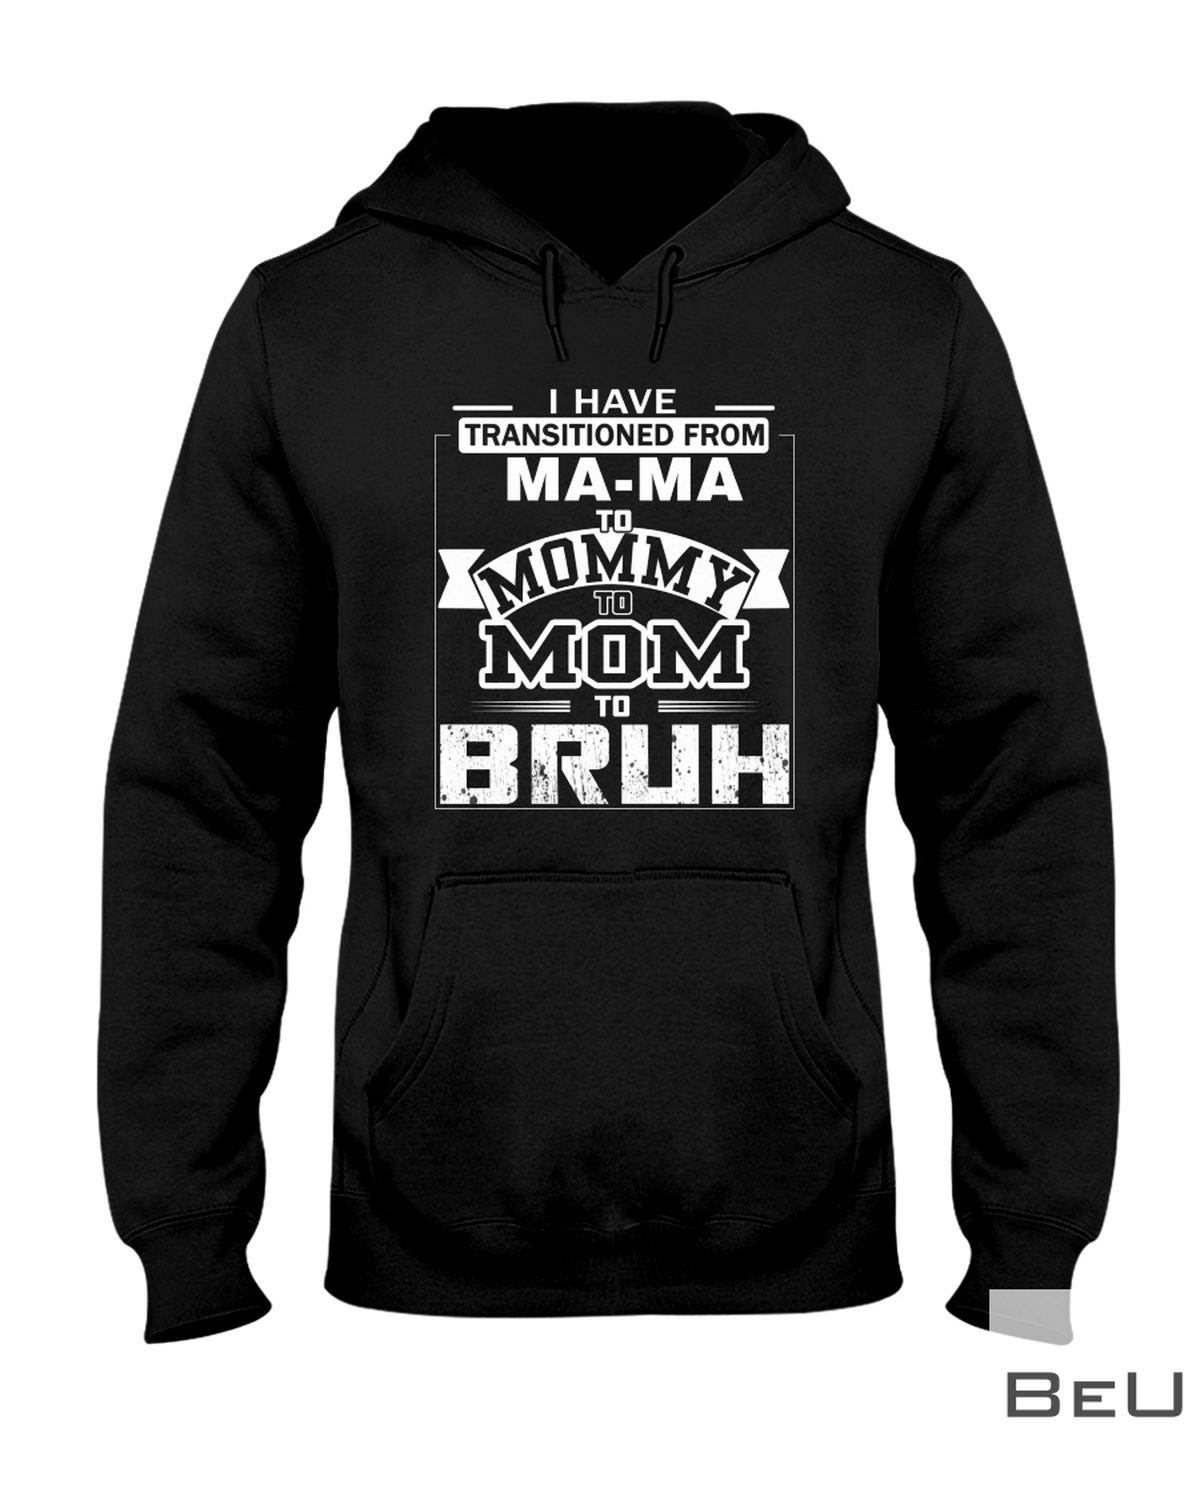 I Have Transitioned From Ma-Ma To Mommy To Mom To Bruh Shirtx